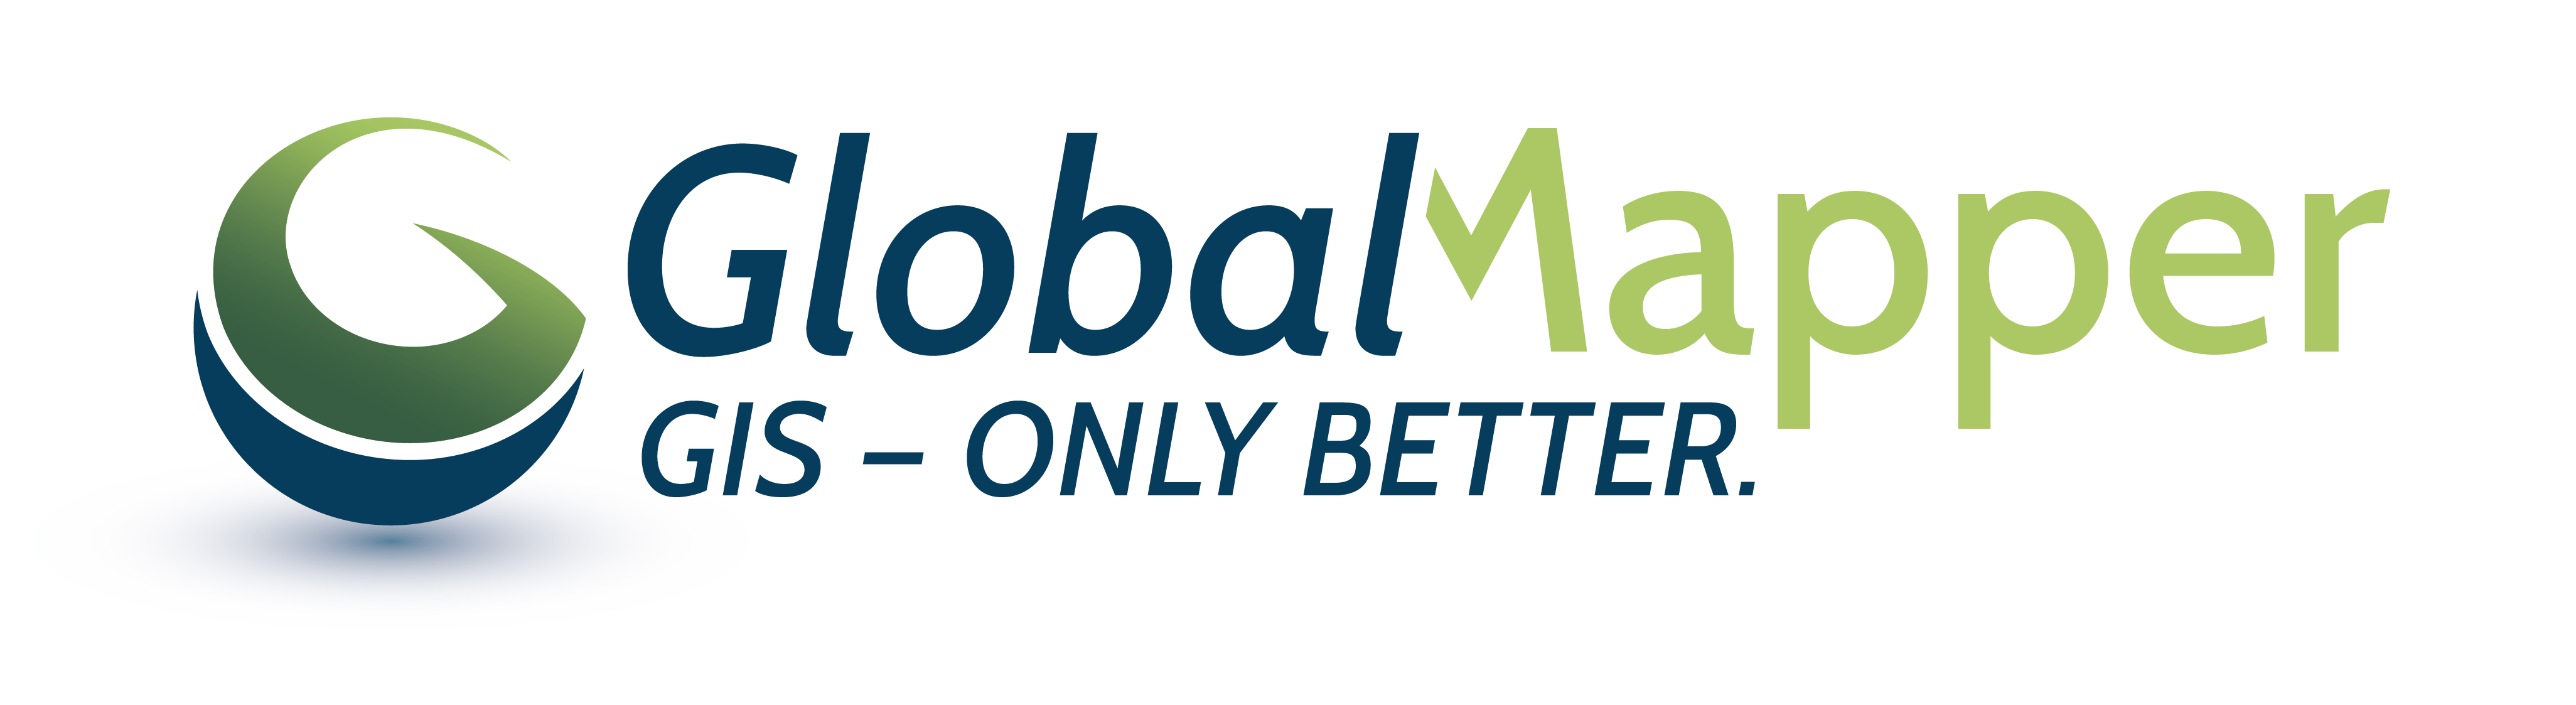 Global Mapper - GIS Software